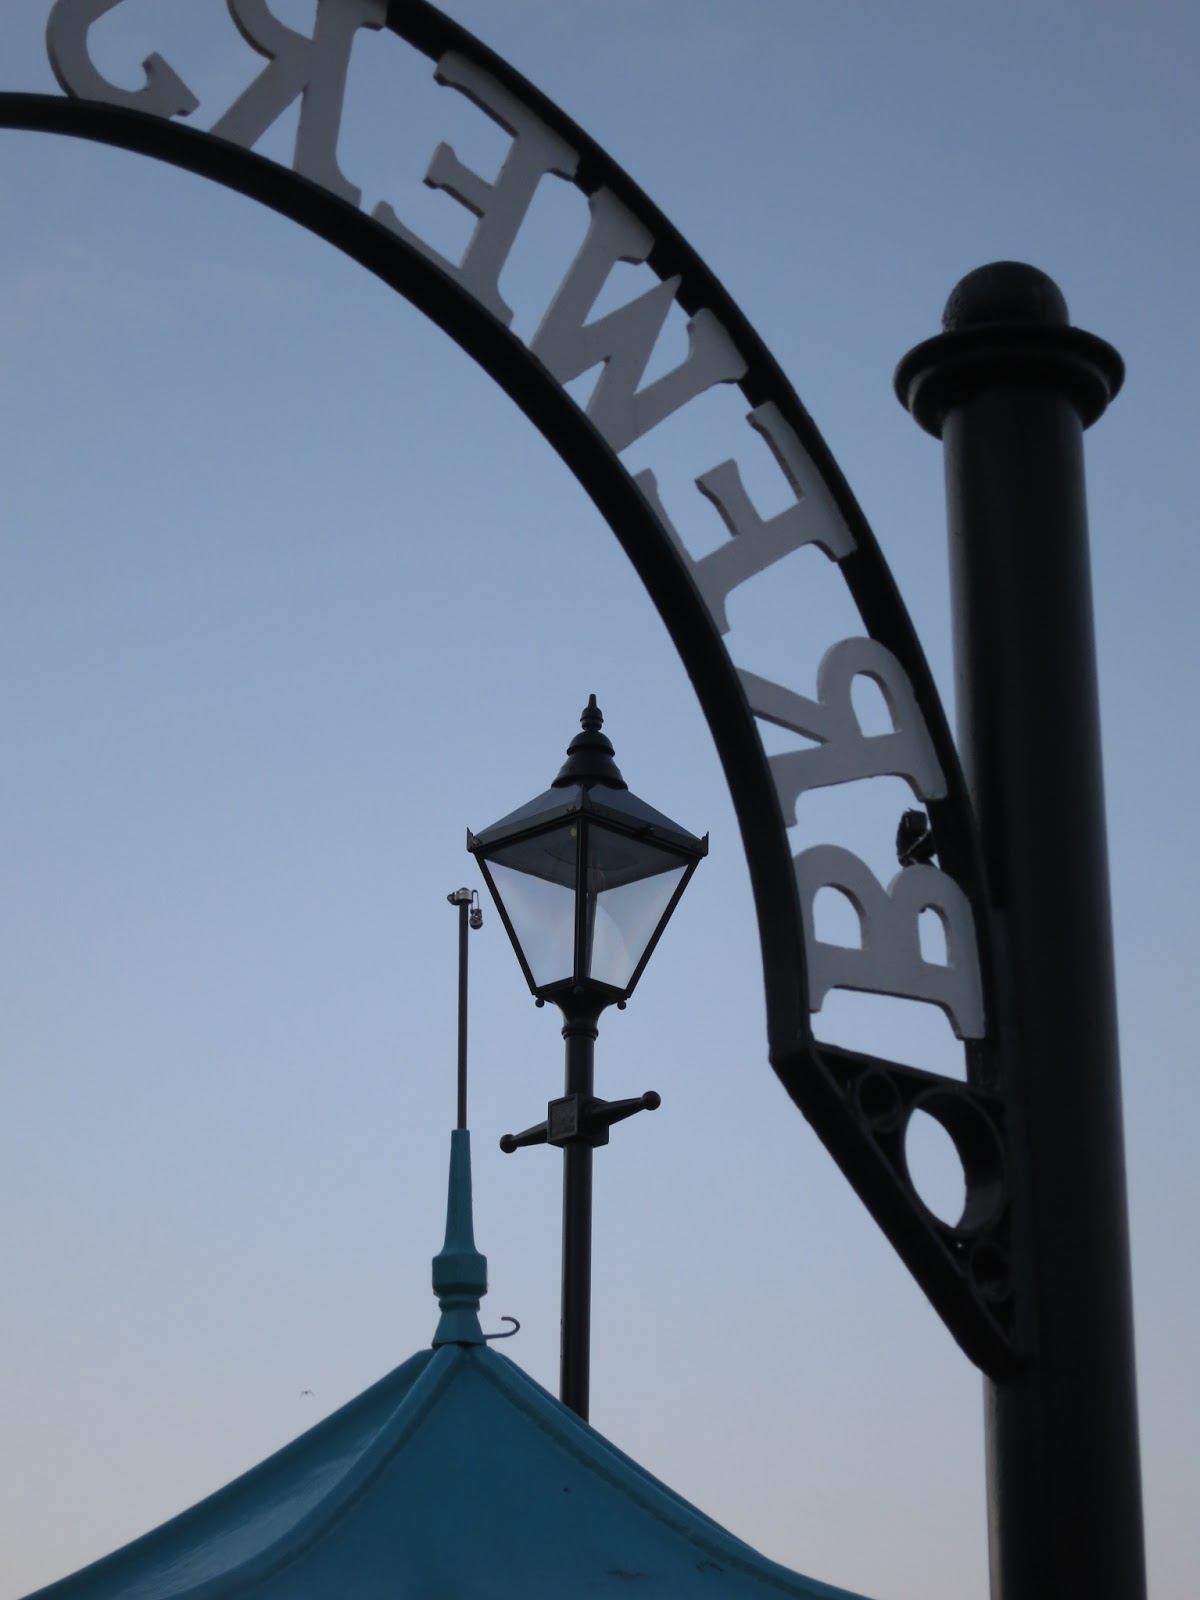 Arch, lampost and pole on kiosk for boat trips